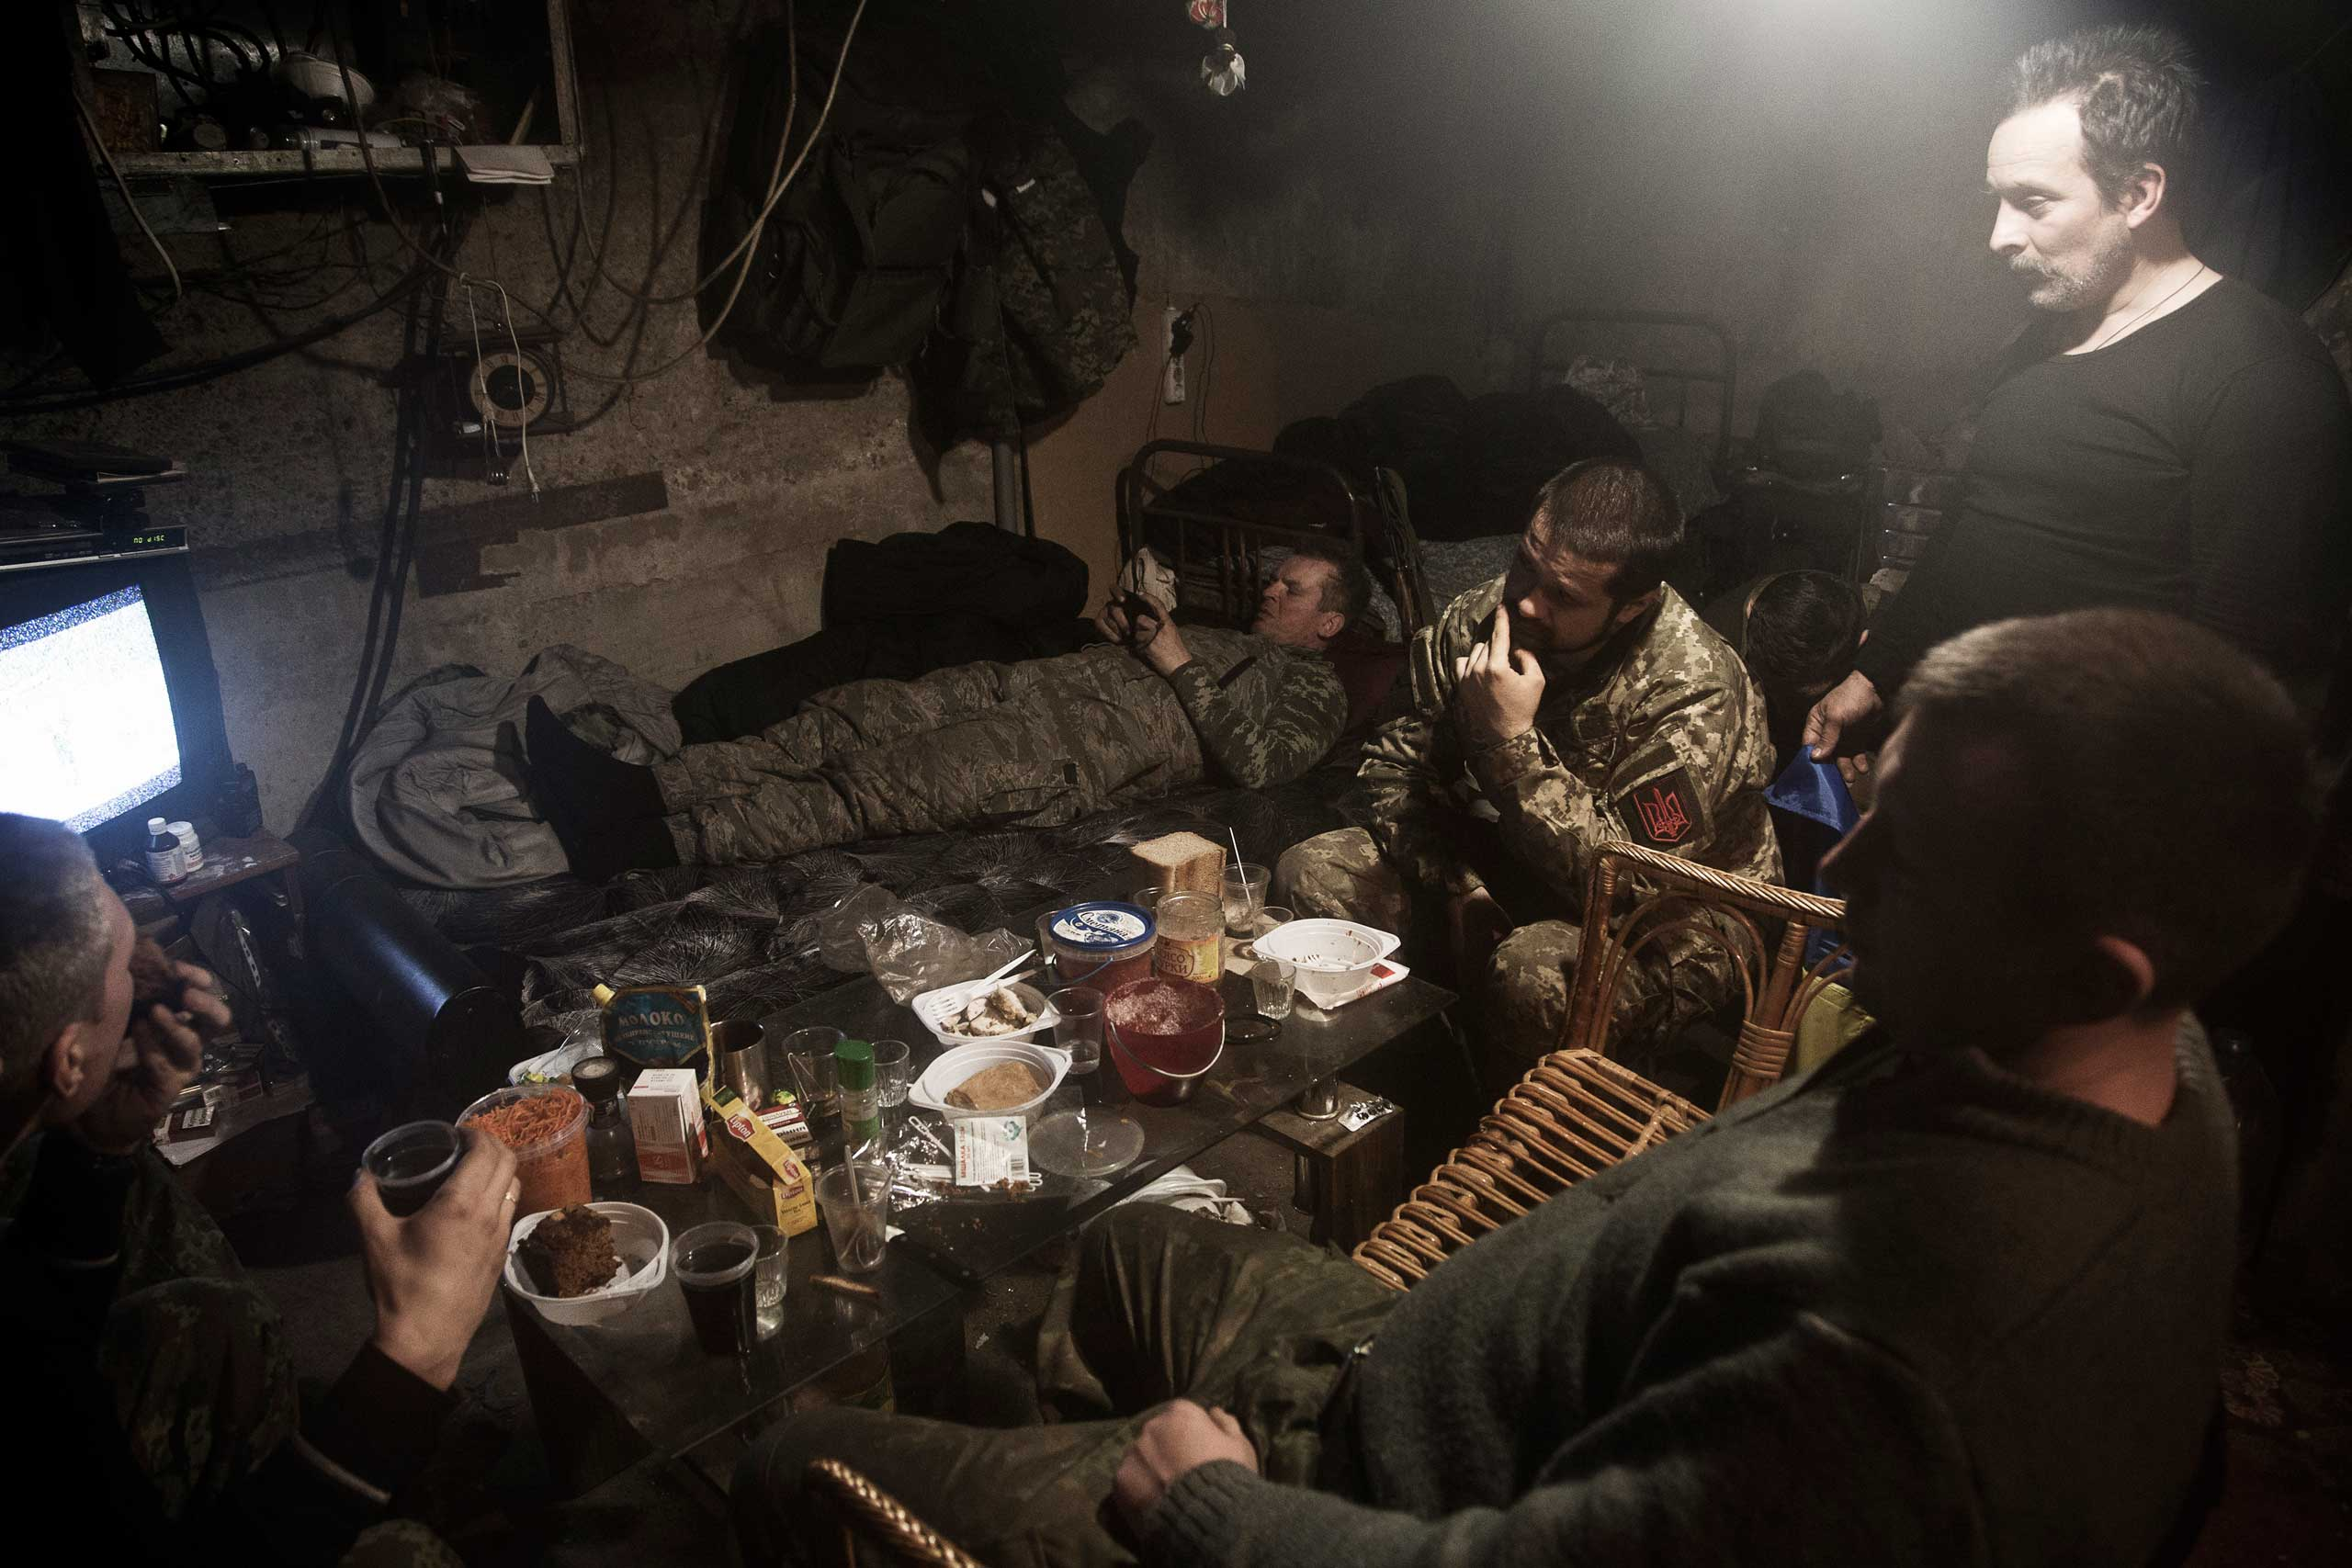 Members of the Dnipro-1 Battalion live in the basement of a destroyed house in Pisky, with food donated by the Ukrainian public, Feb. 9, 2015.